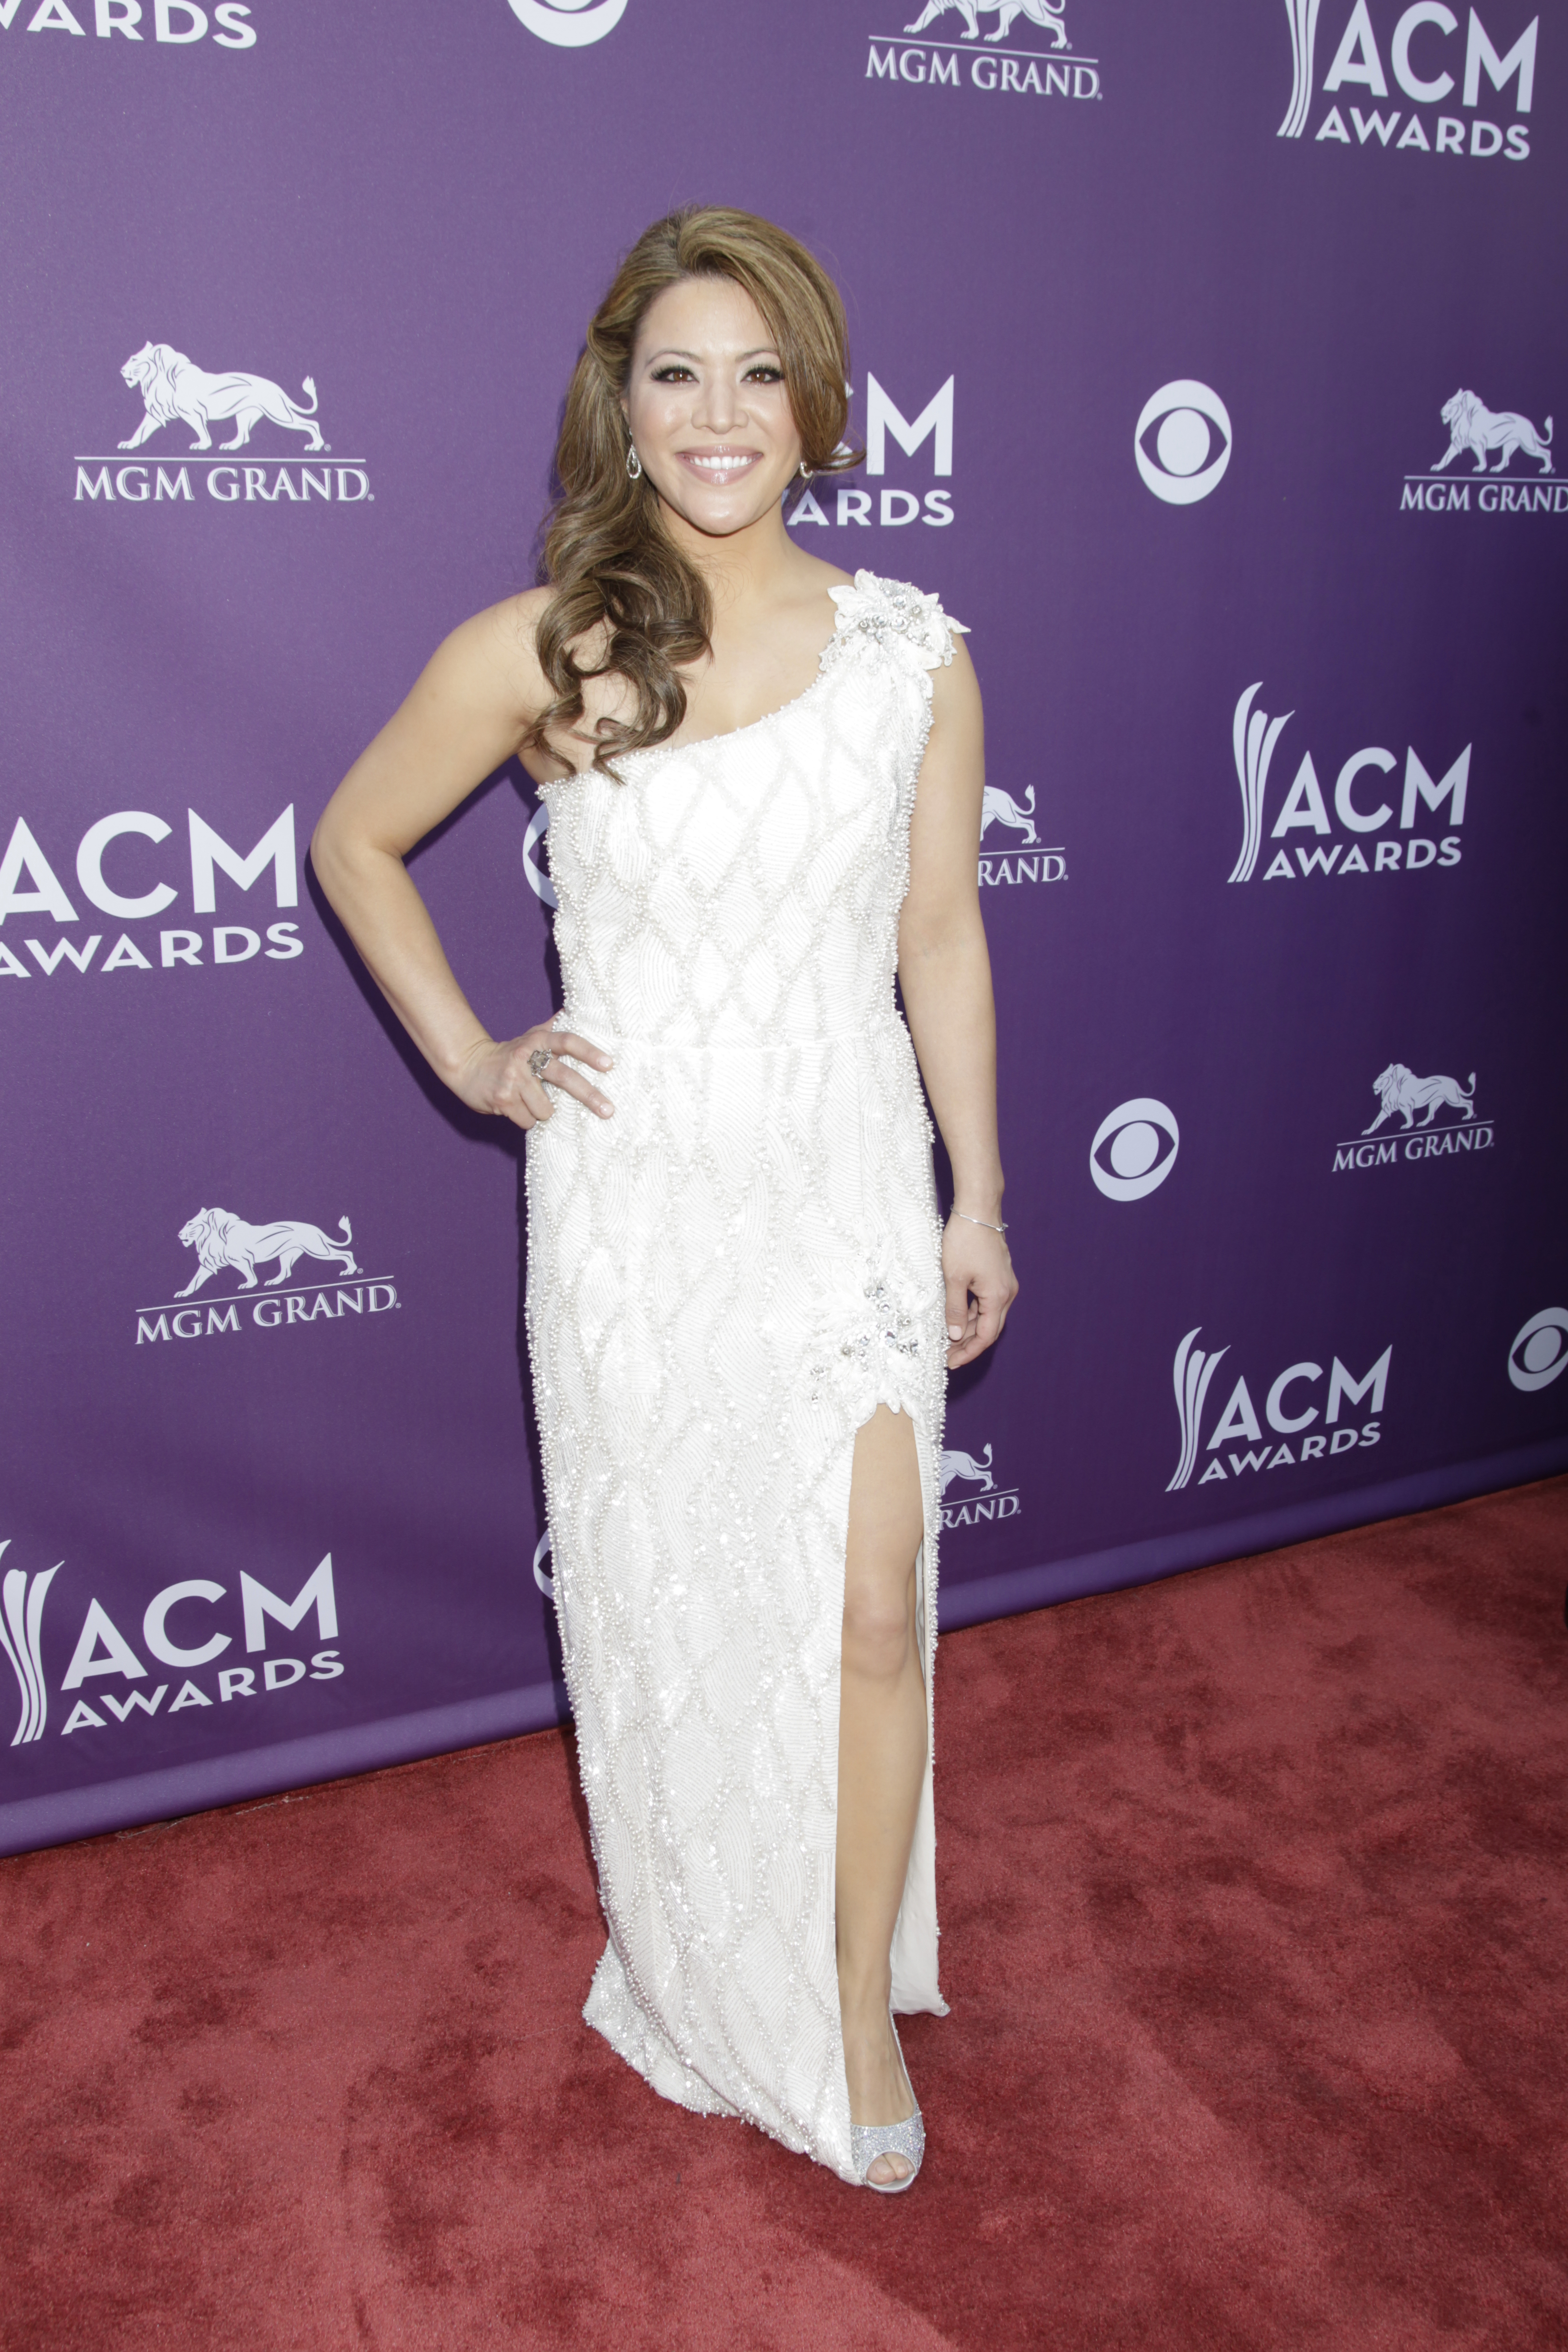 Angie Johnson on the Red Carpet - 48th ACM Awards